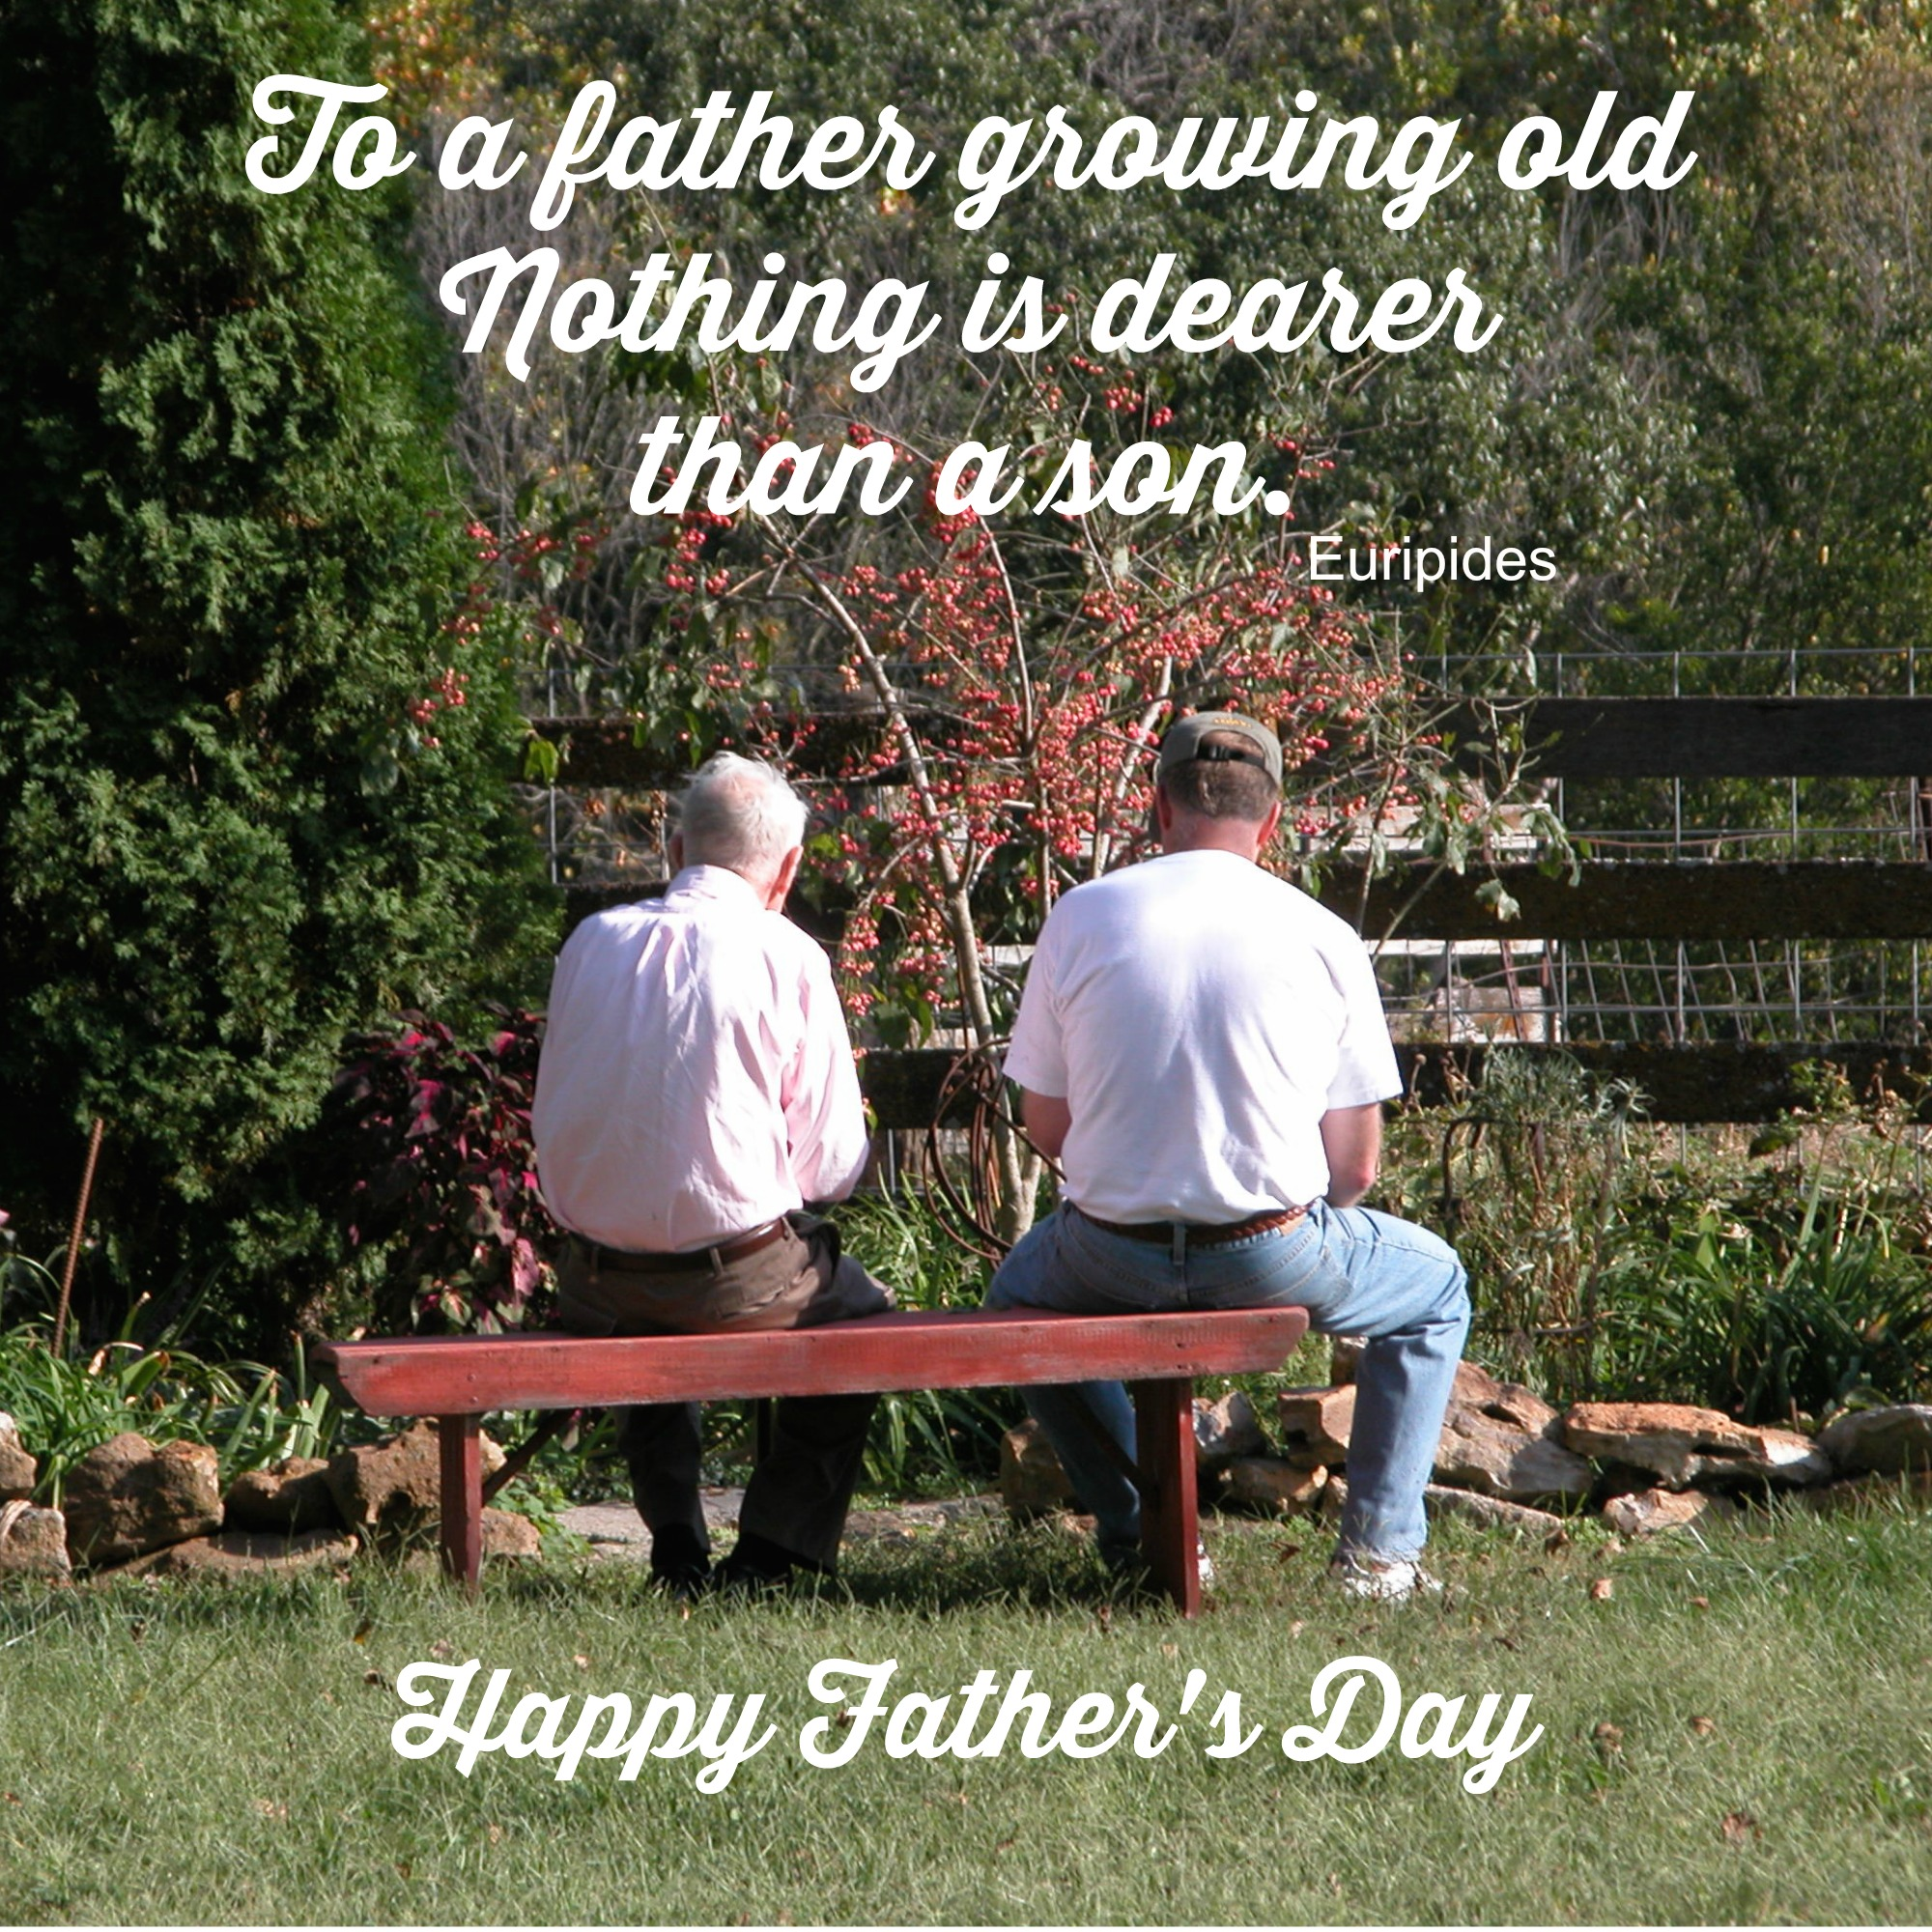 Growing Old Happy Father's Day